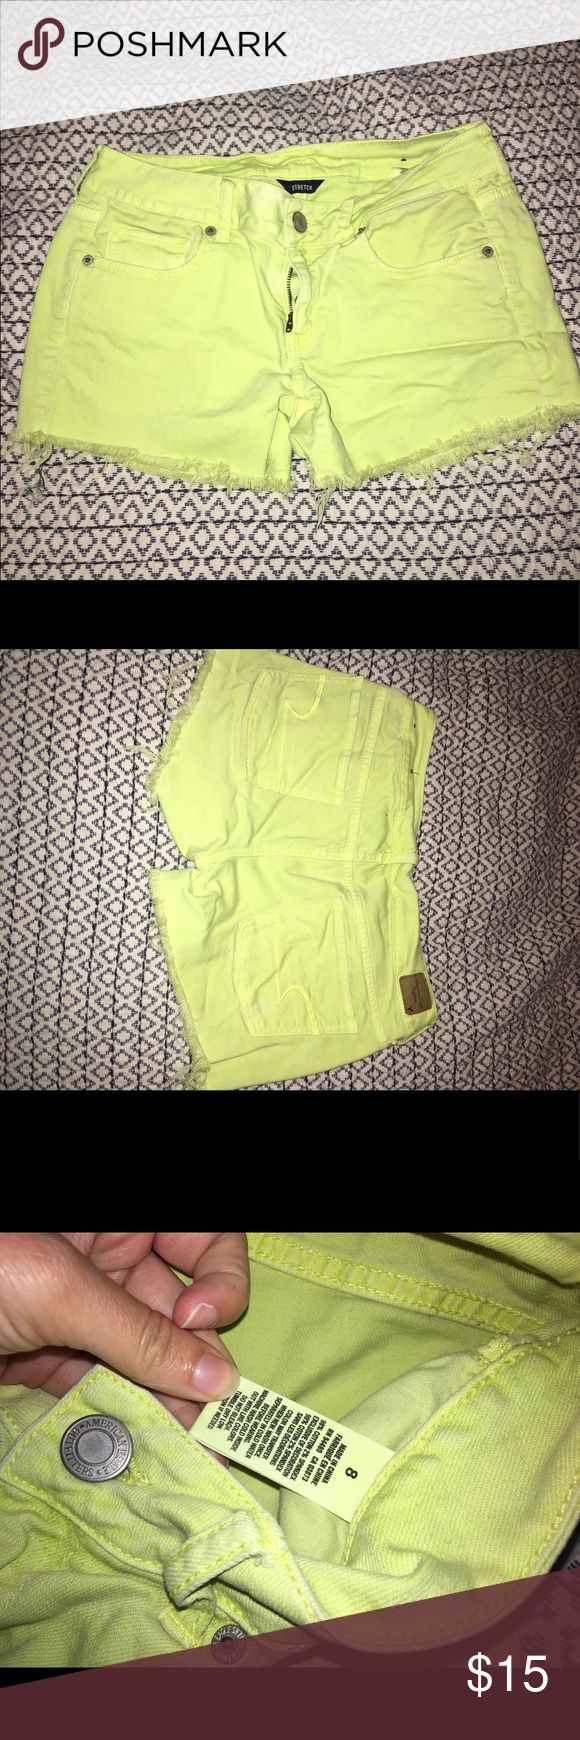 American Eagle Neon Yellow Shorts Great condition - only worn a handful of times. American Eagle Outfitters Shorts